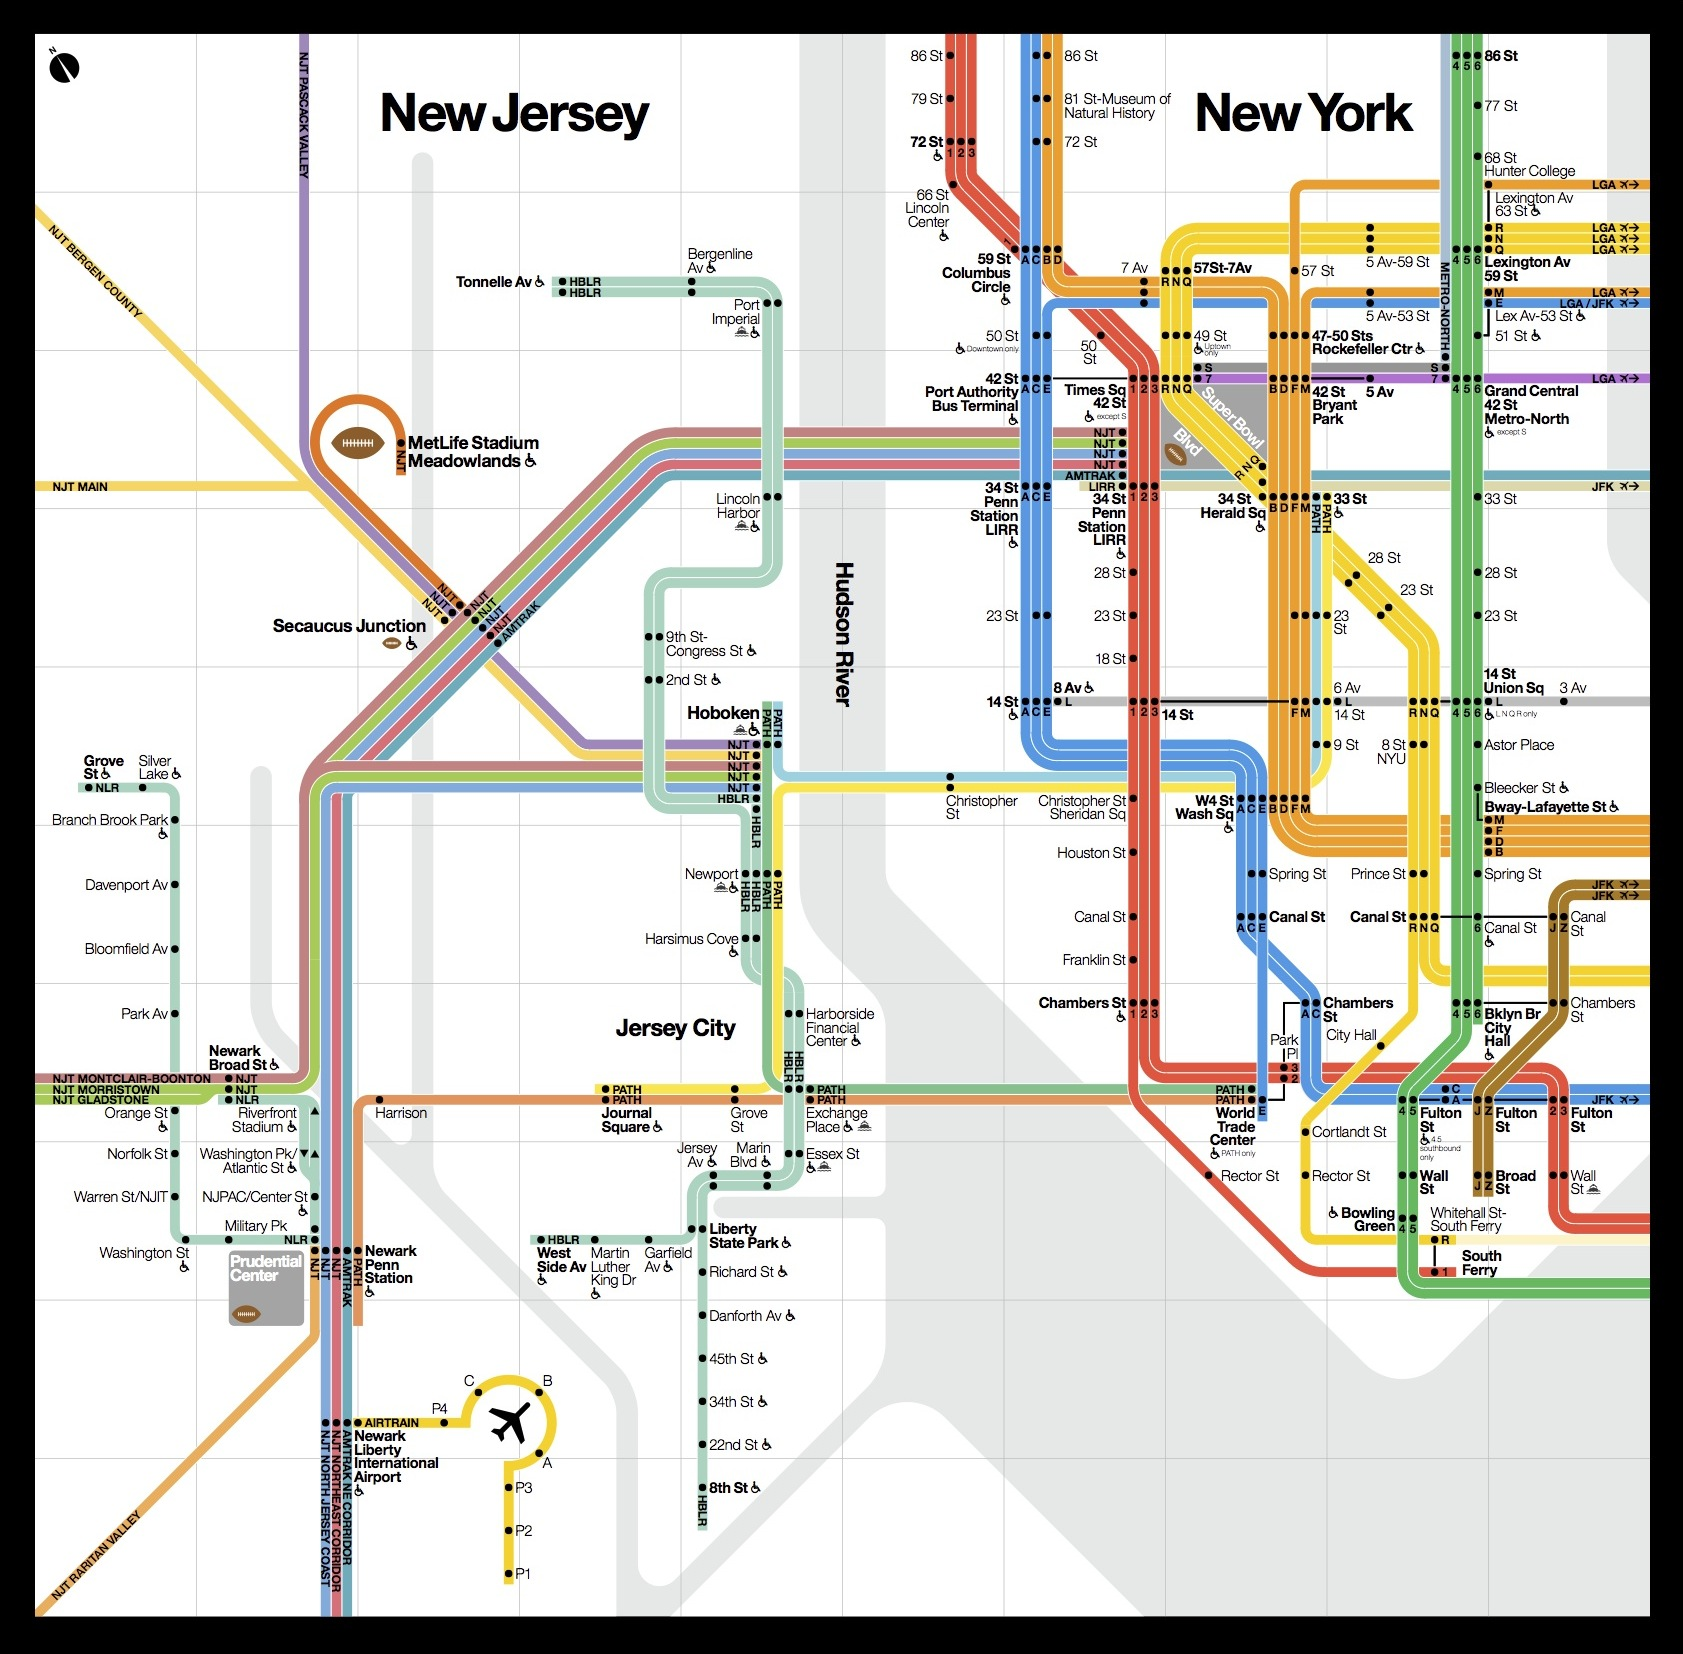 A beautiful new public transit map shows how New York and ...